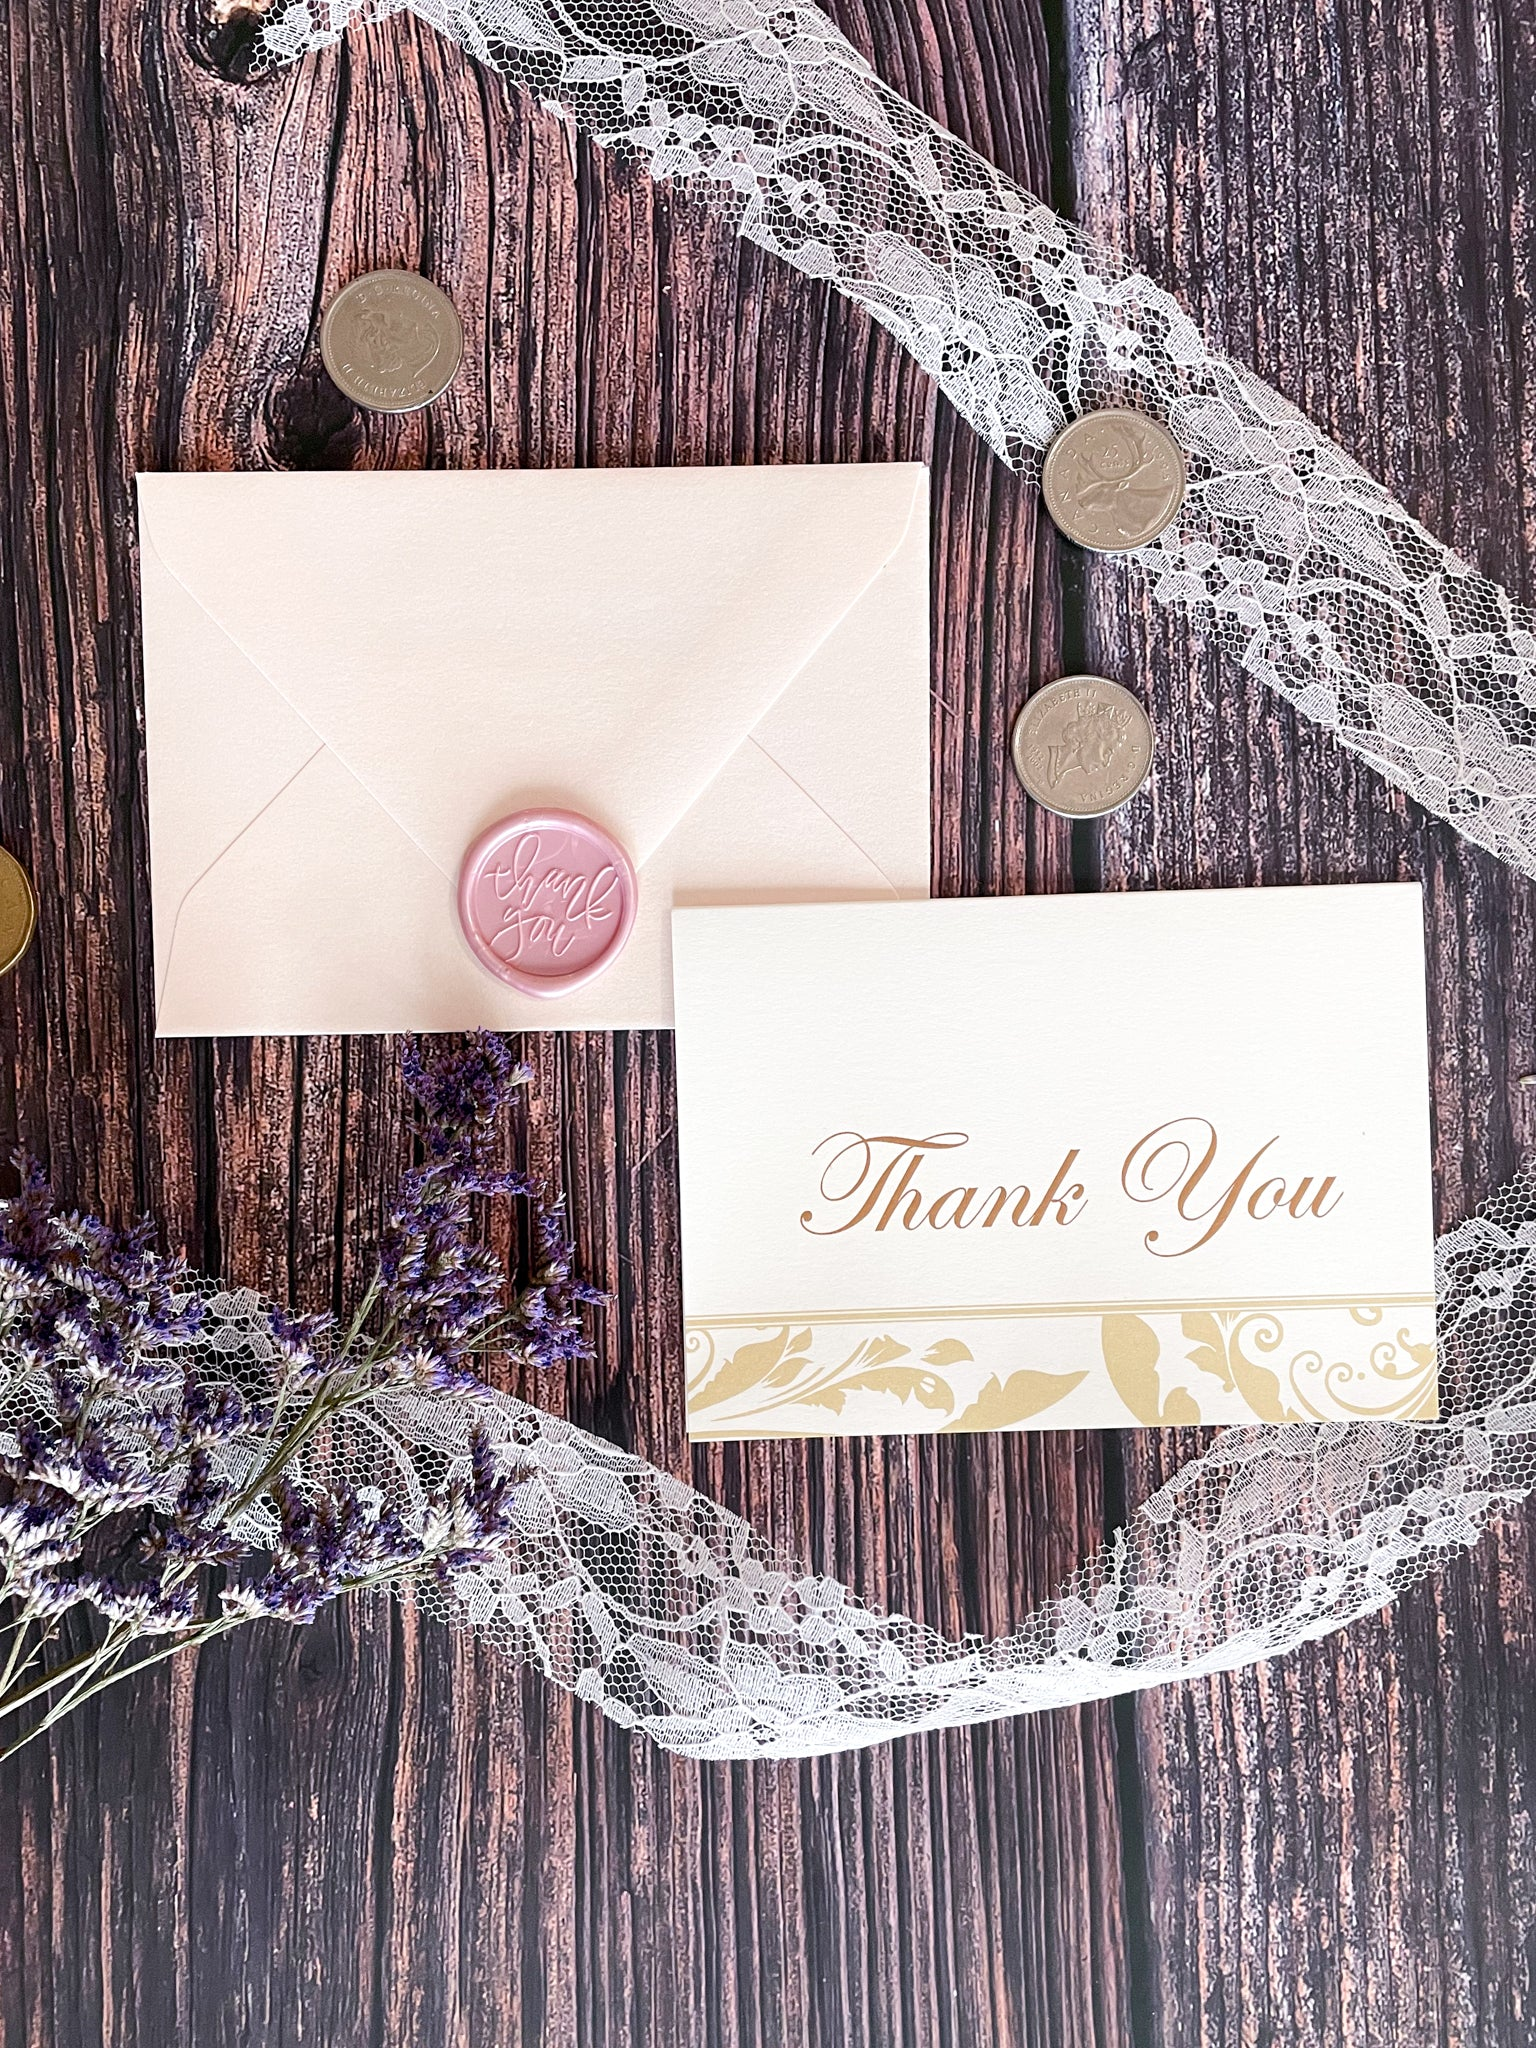 Hannah Thank You Cards, Gold Floral Swirls Border Thank You Cards for Wedding, Formal Event Thank You Cards - Lindsay Ann Artistry